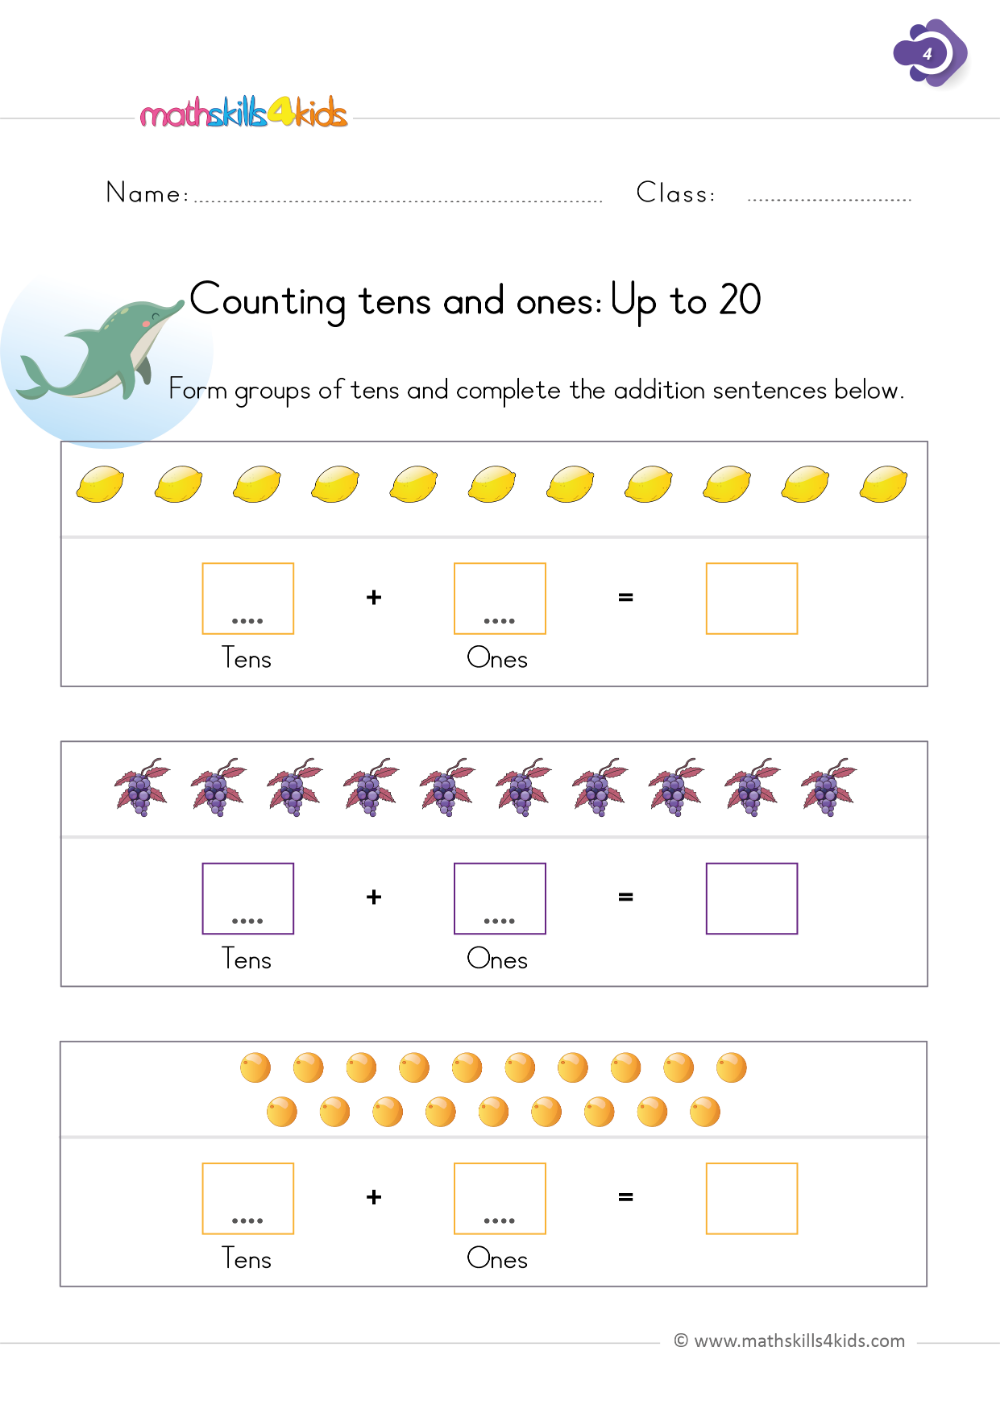 hight resolution of Counting tens and ones - First Grade Math Worksheets   1st grade worksheets